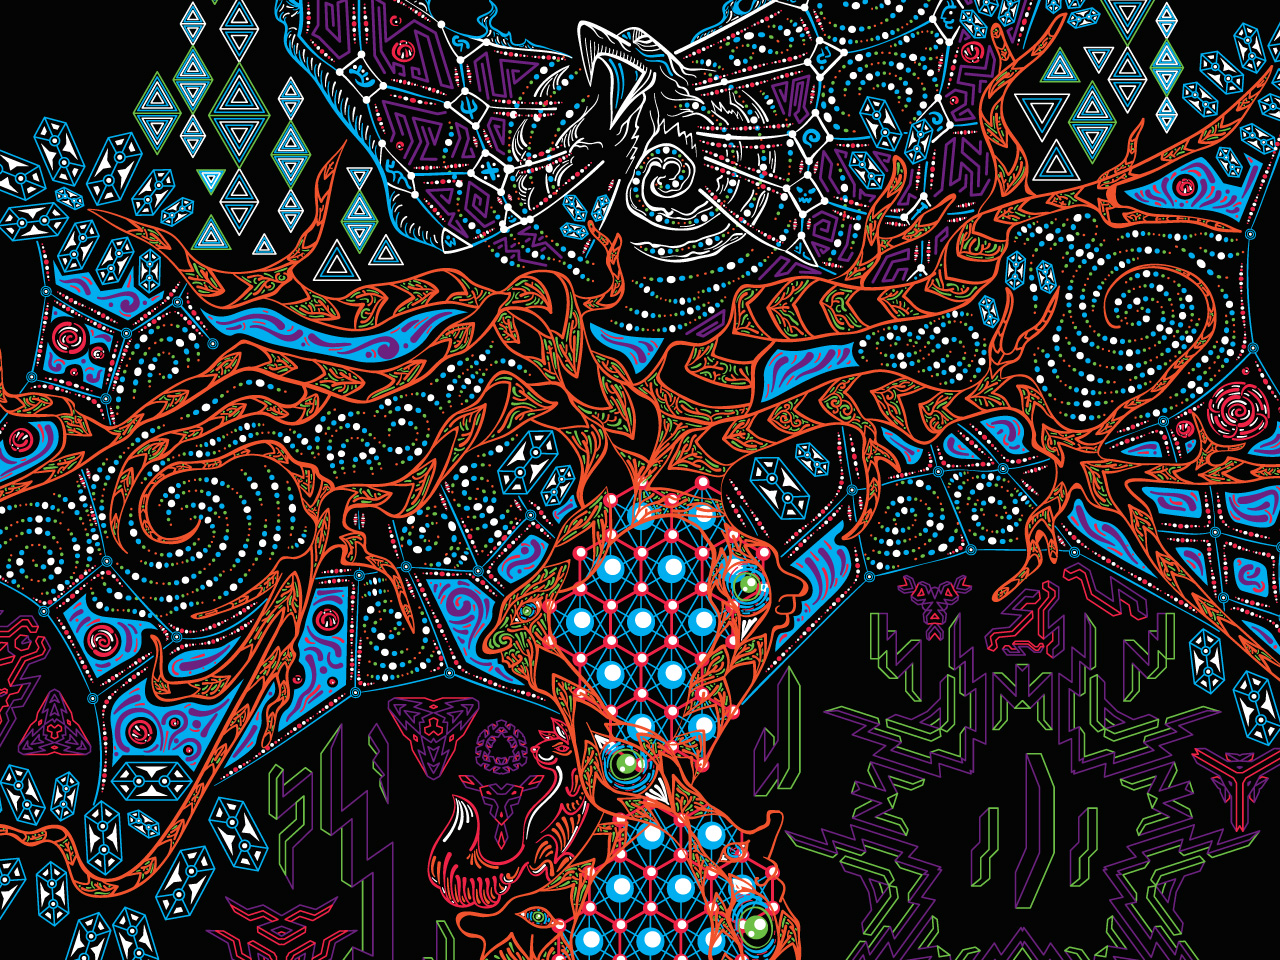 Psychedelic Yggdrasil the Tree of Life free wallpaper by Andrei Verner